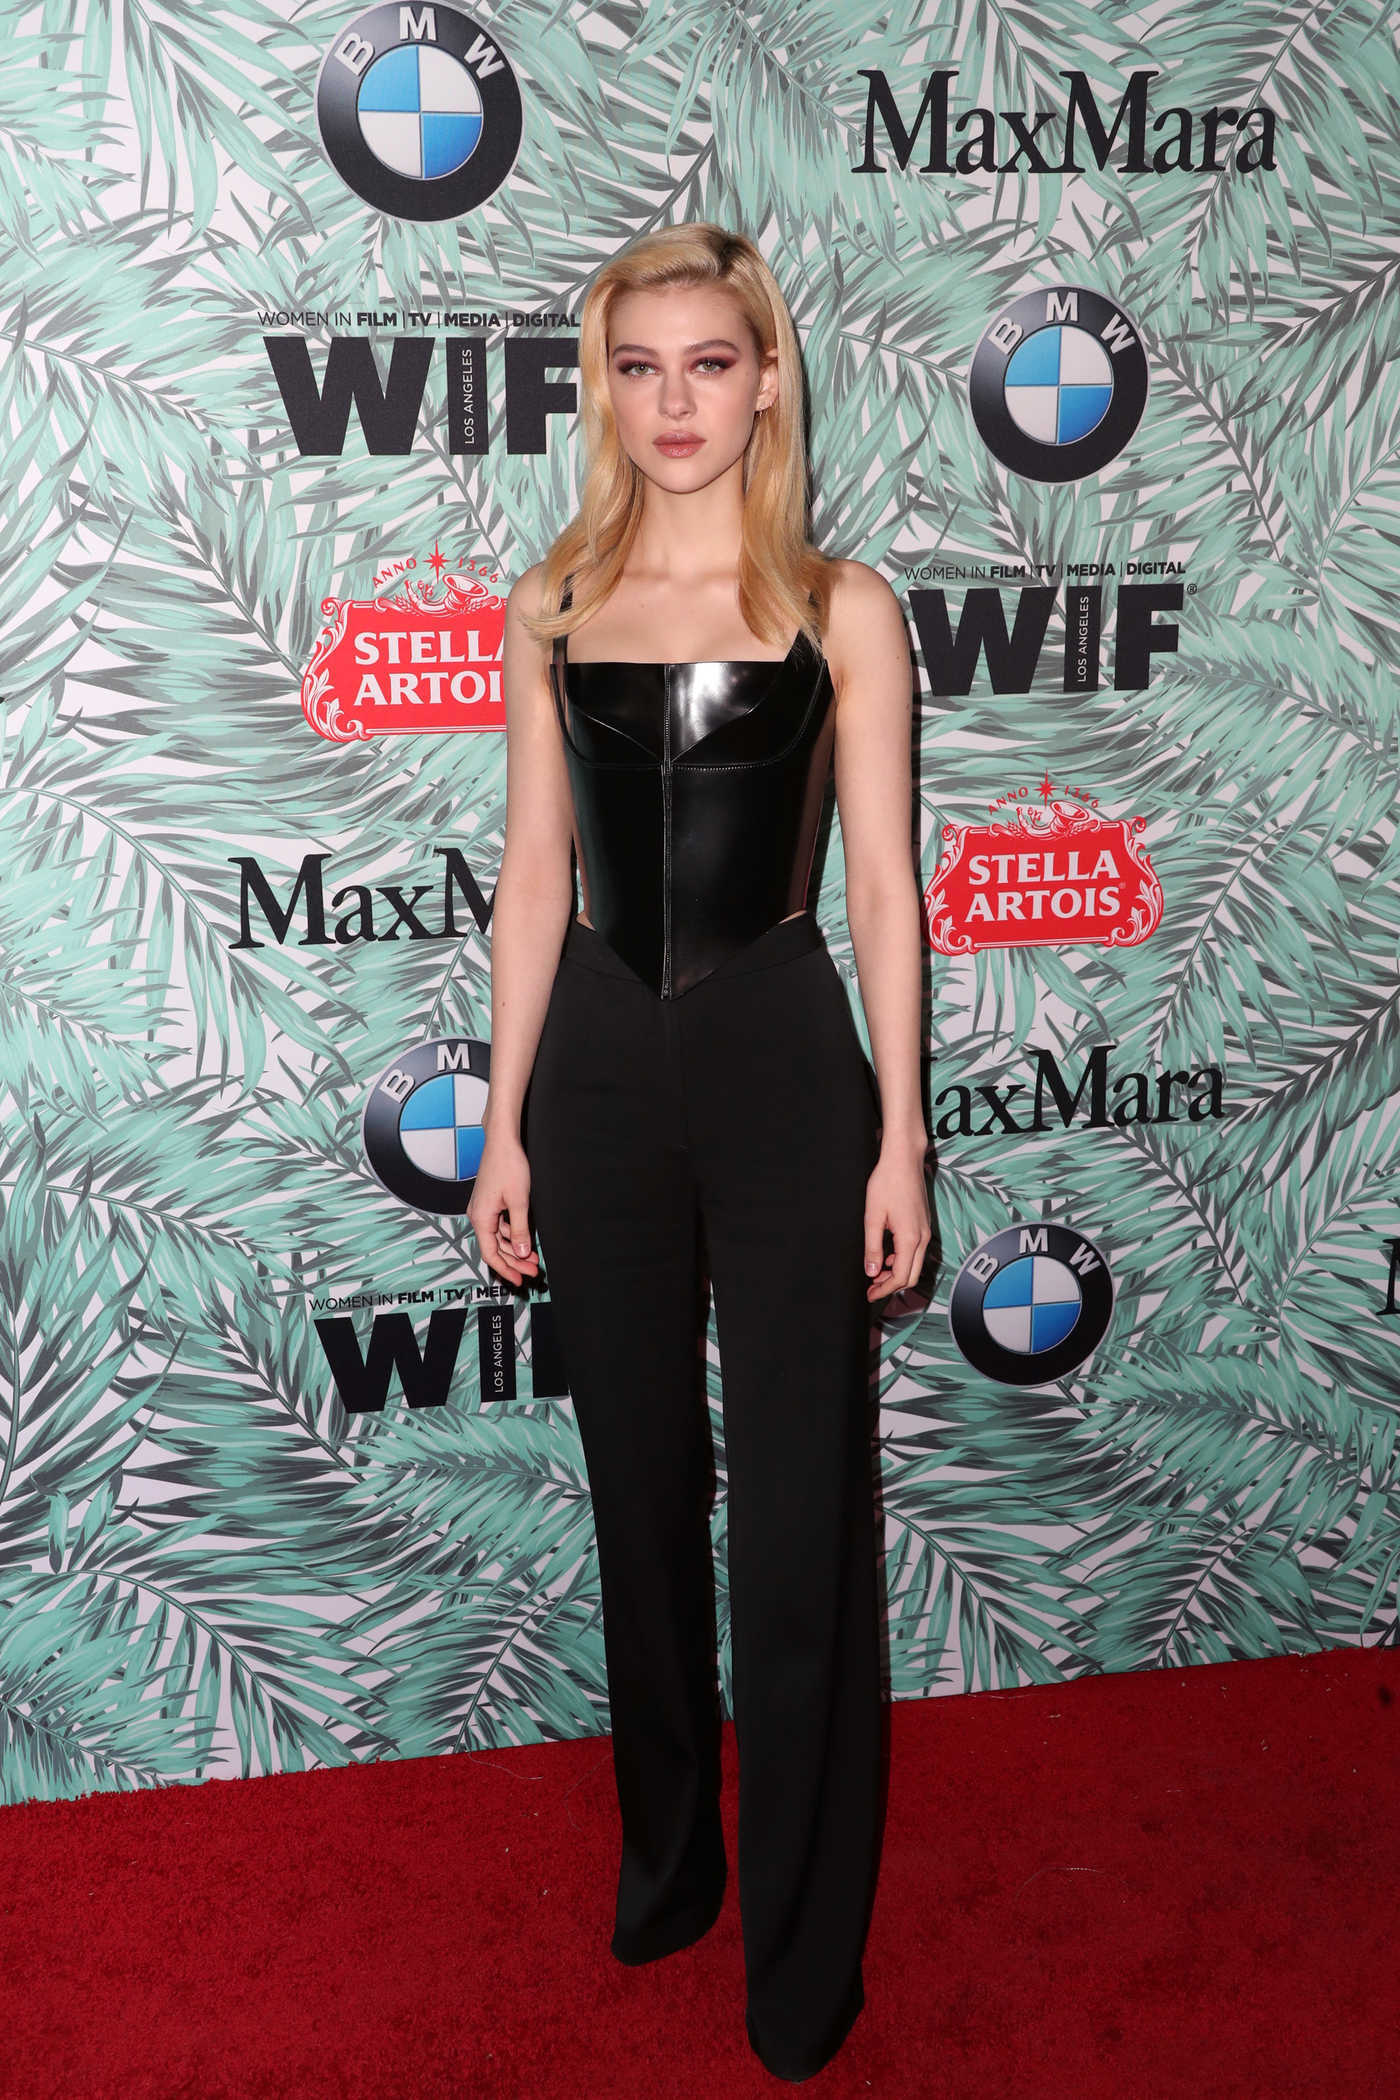 Nicola Peltz at the Woman in Film Cocktail Party in Los Angeles 02/24/2017